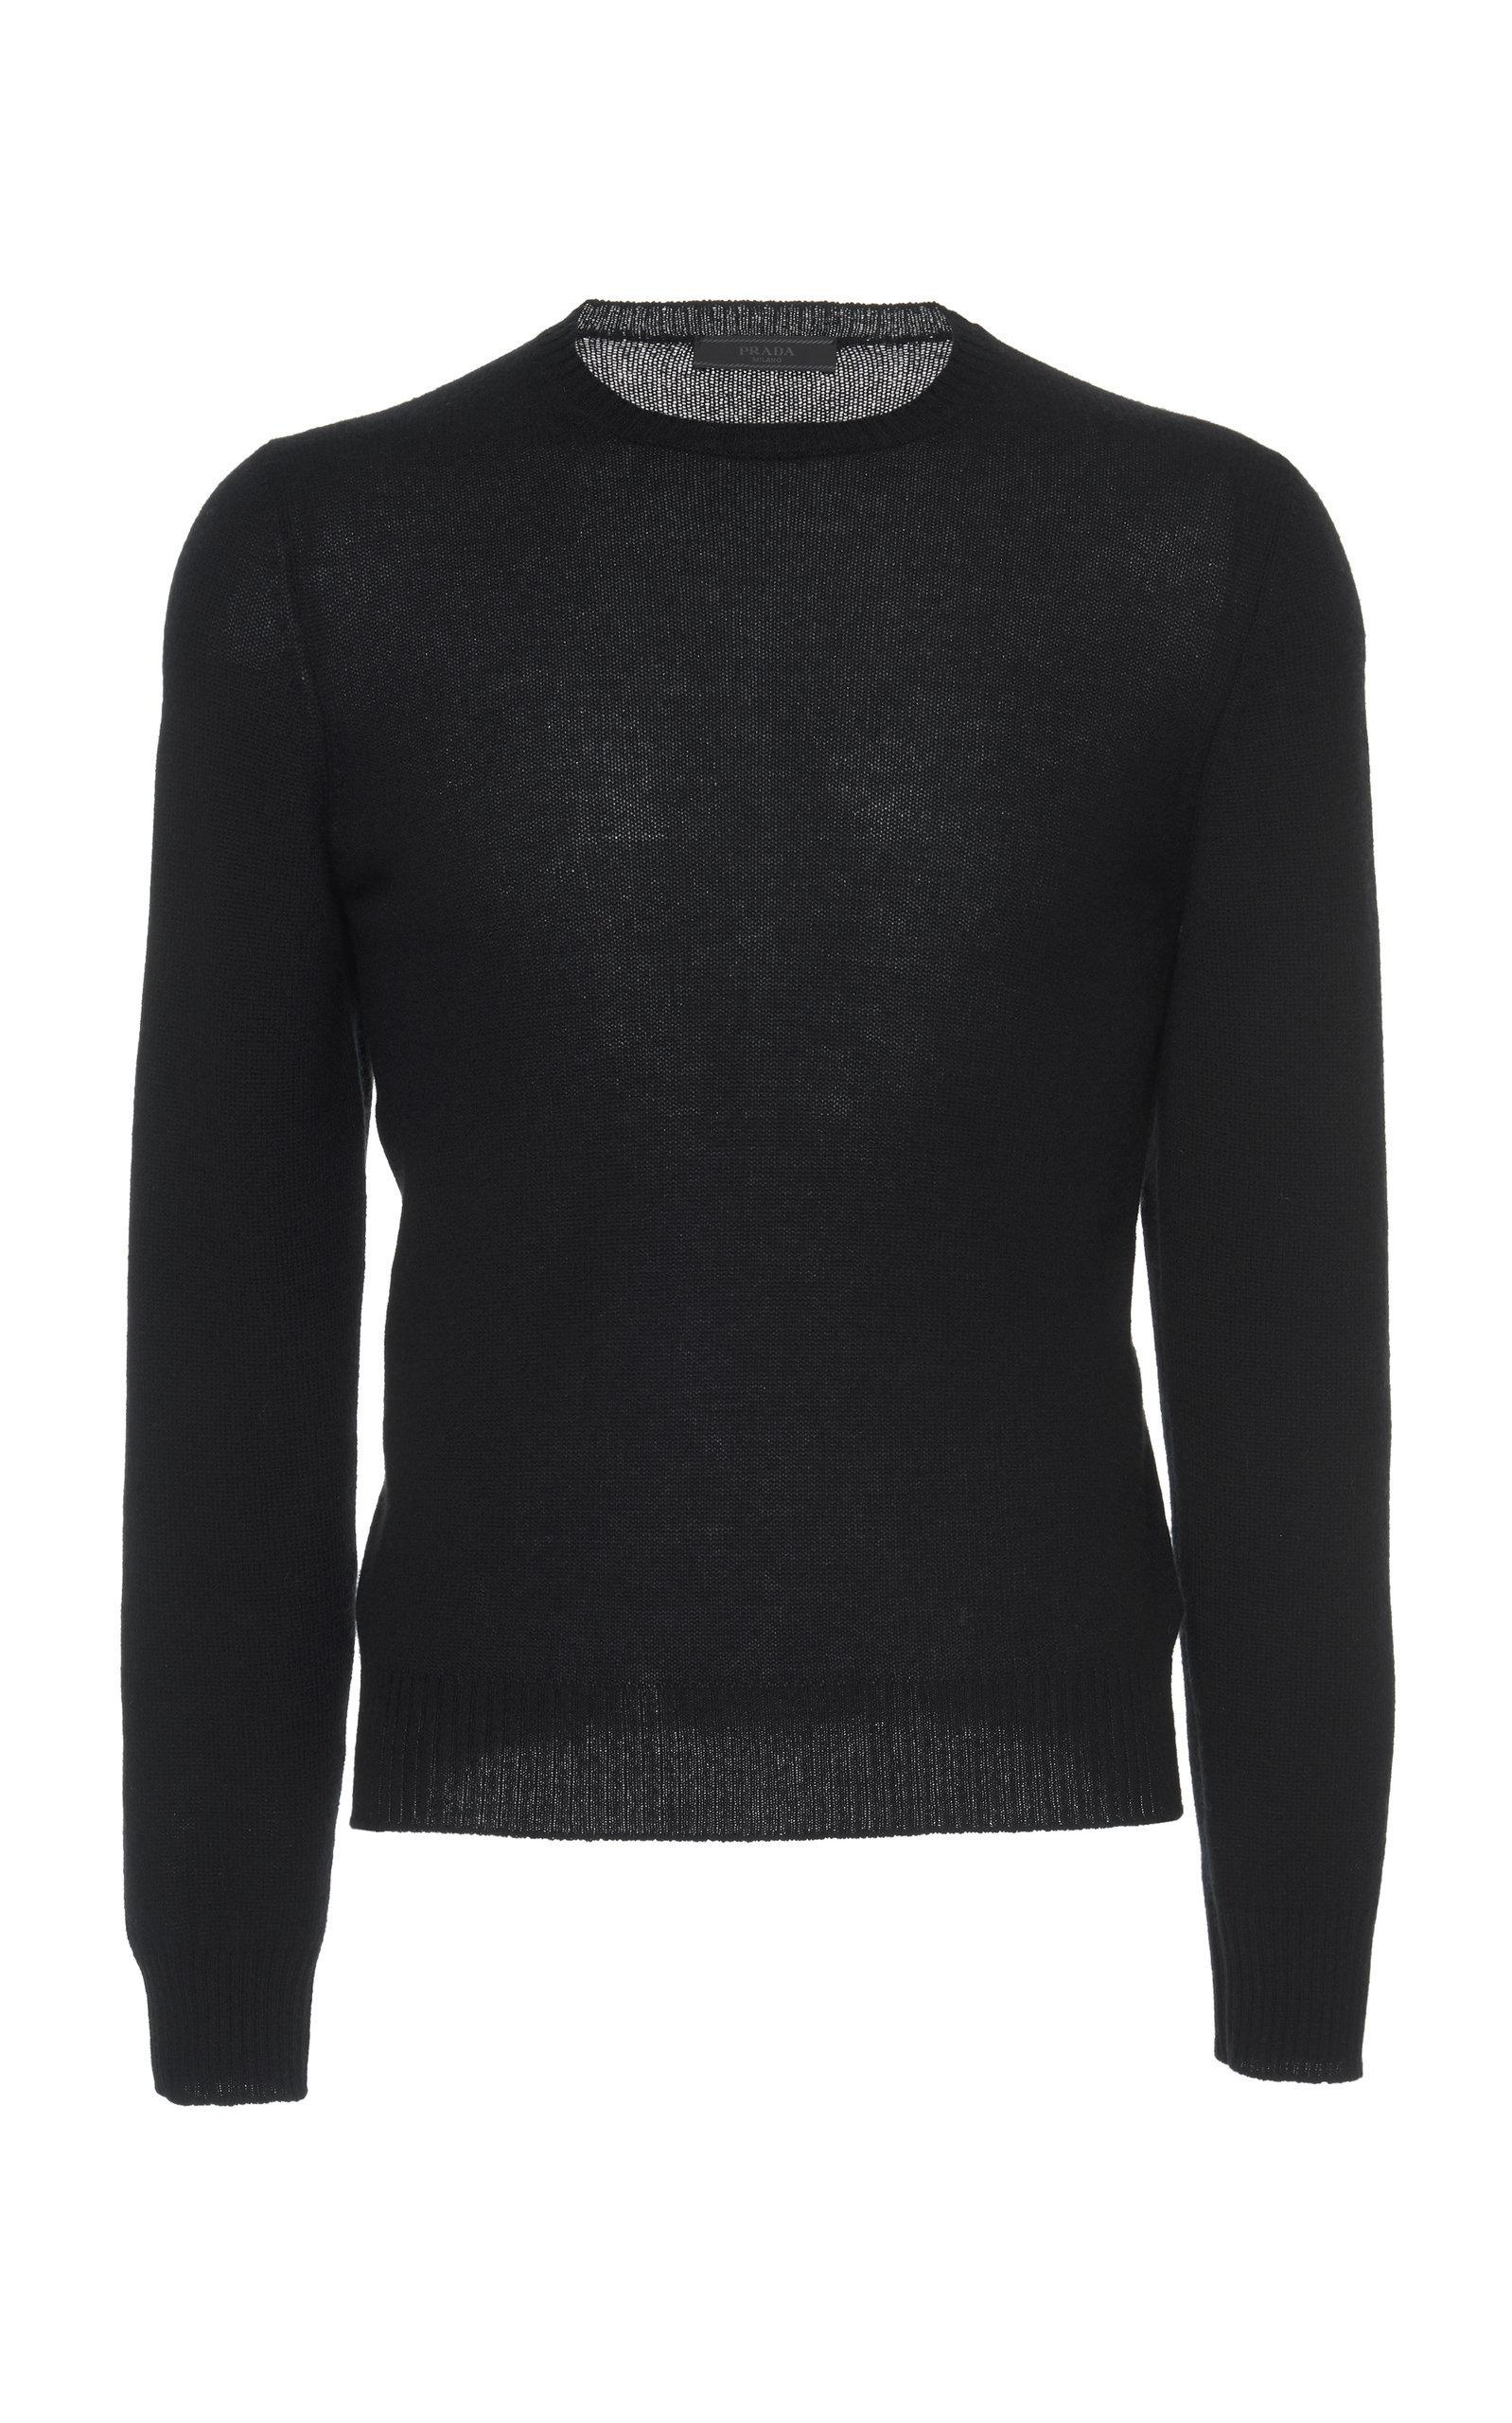 Prada Cashmere Crewneck Sweater In Black